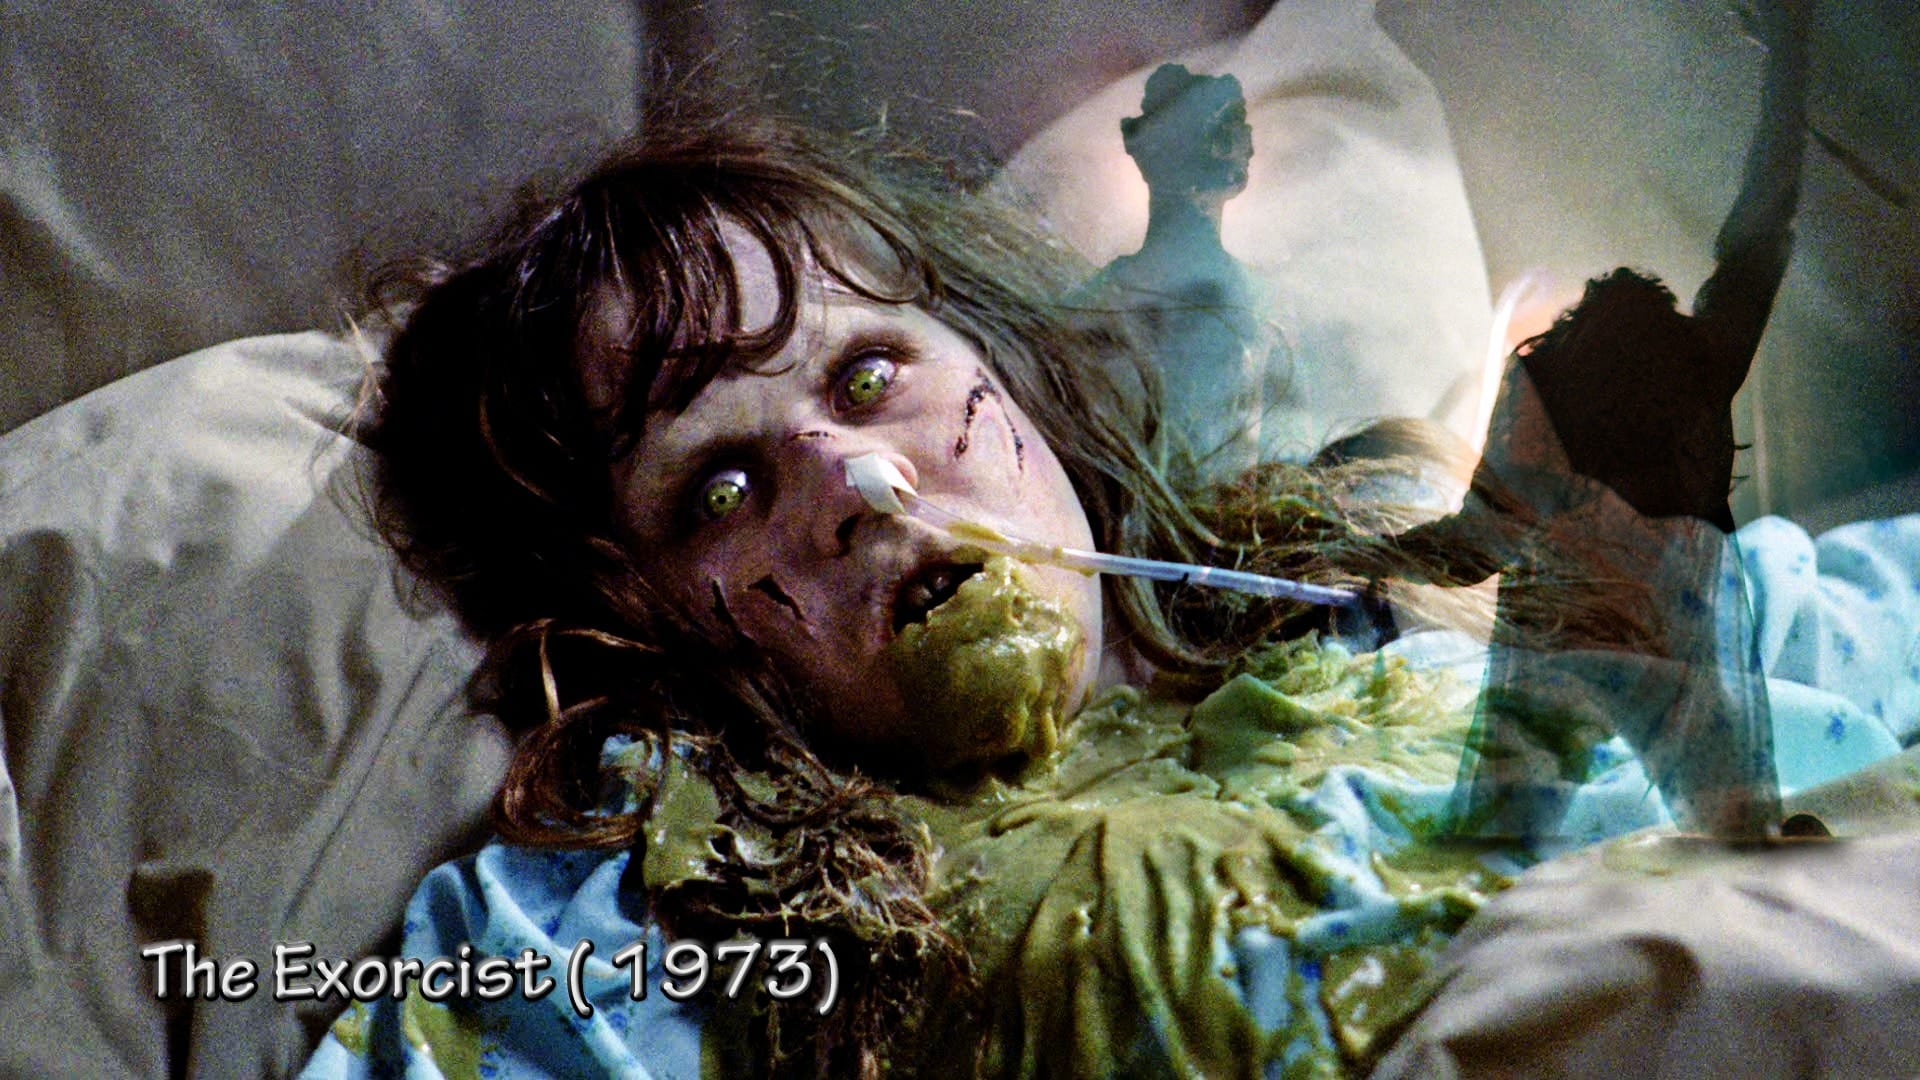 List Of Top 10 Horror Movies - The Exorcist [1973]